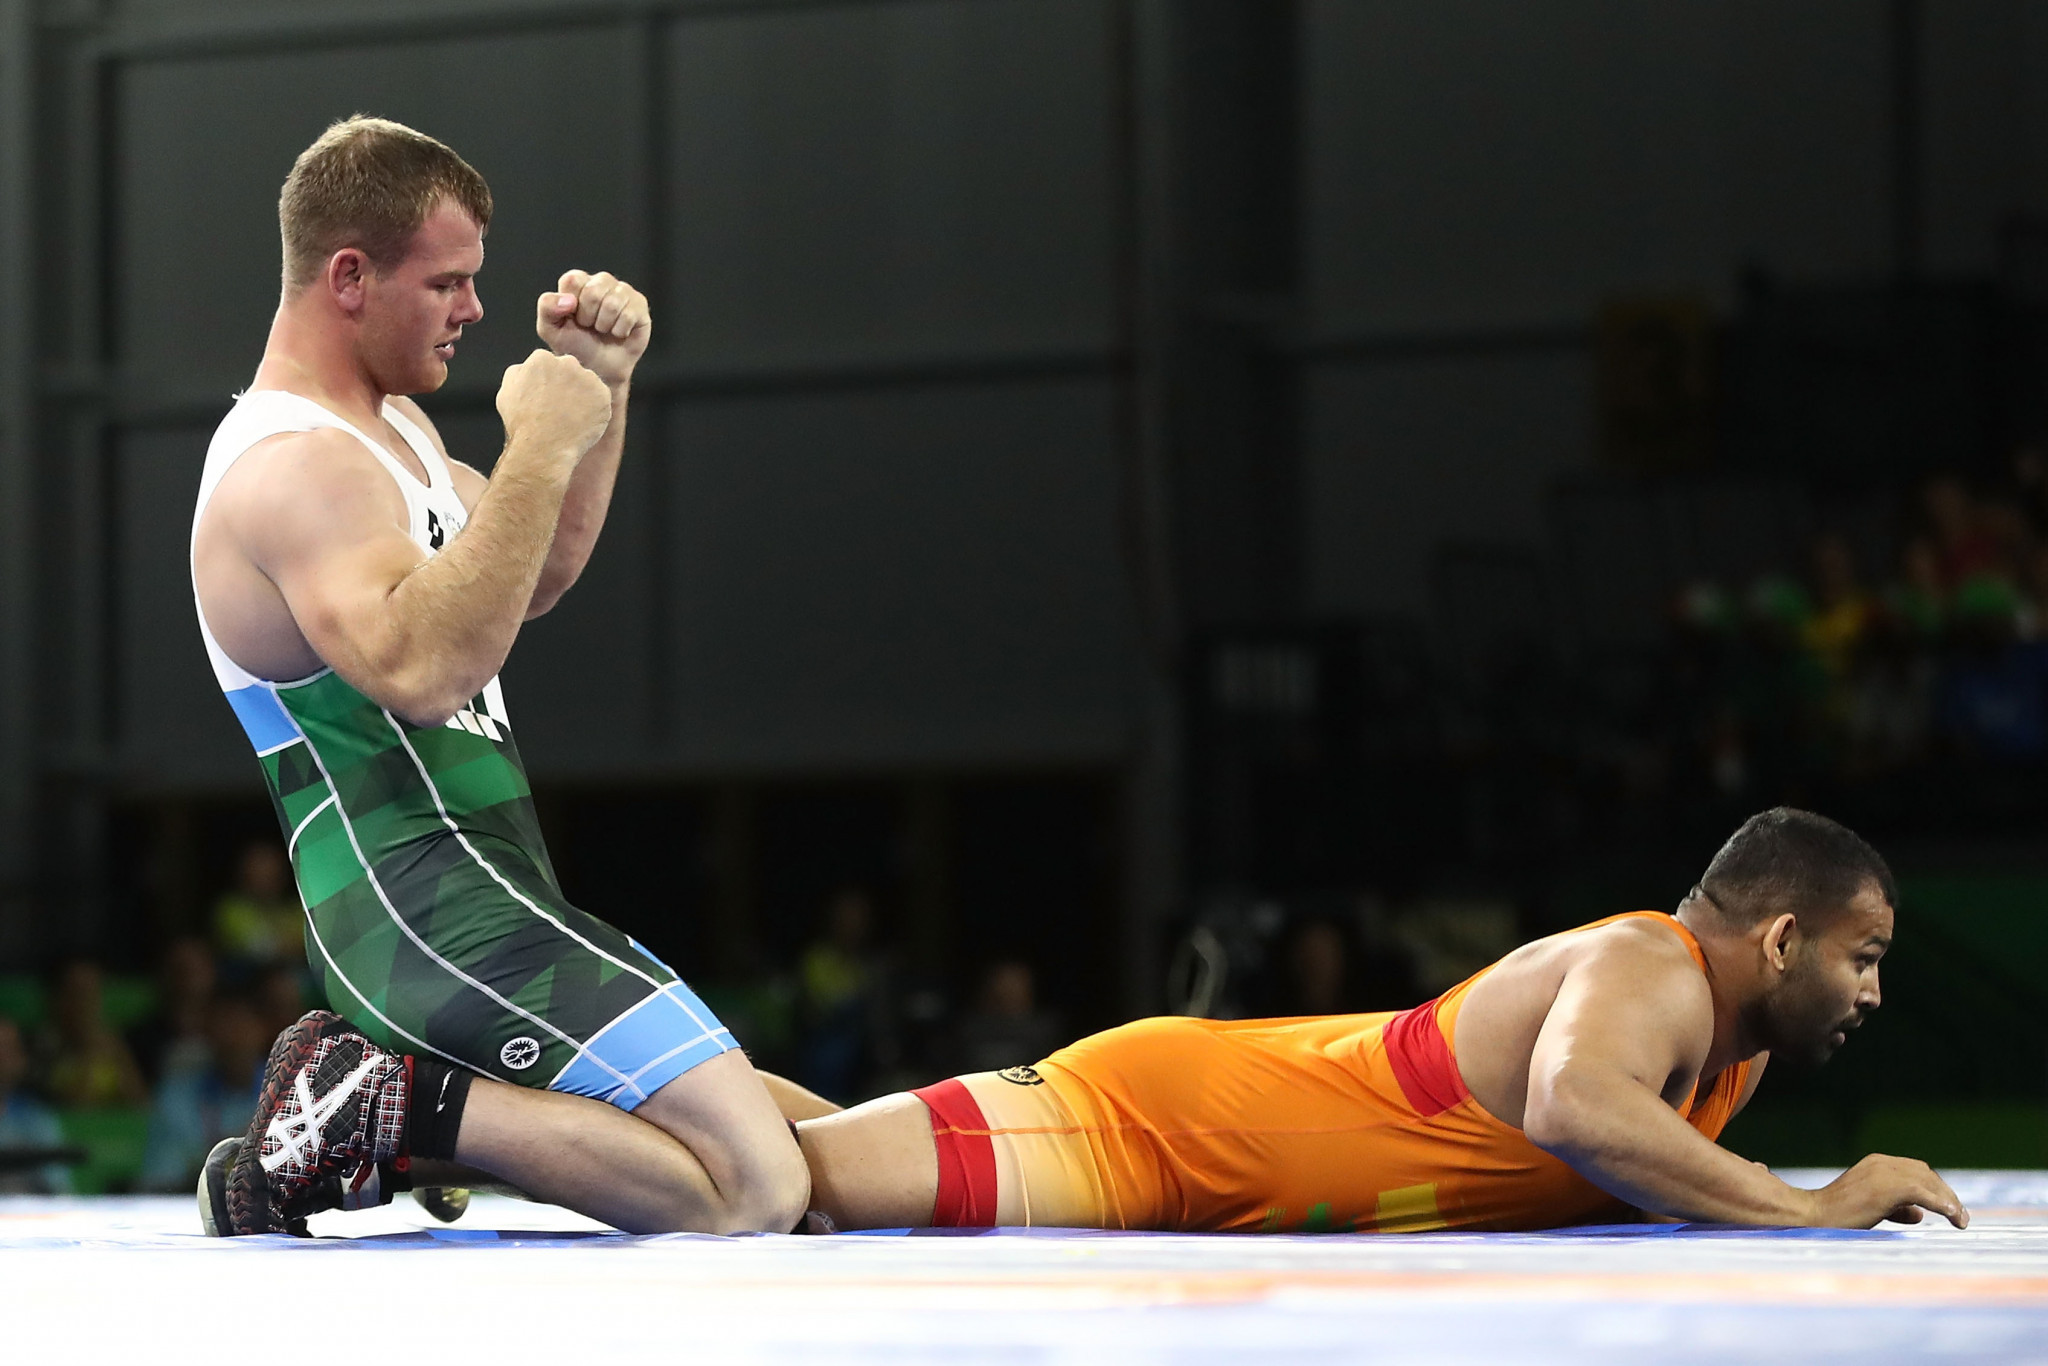 South Africa's Martin Erasmus beat India's Mausam Khatri in the men's 97kg freestyle final ©Getty Images